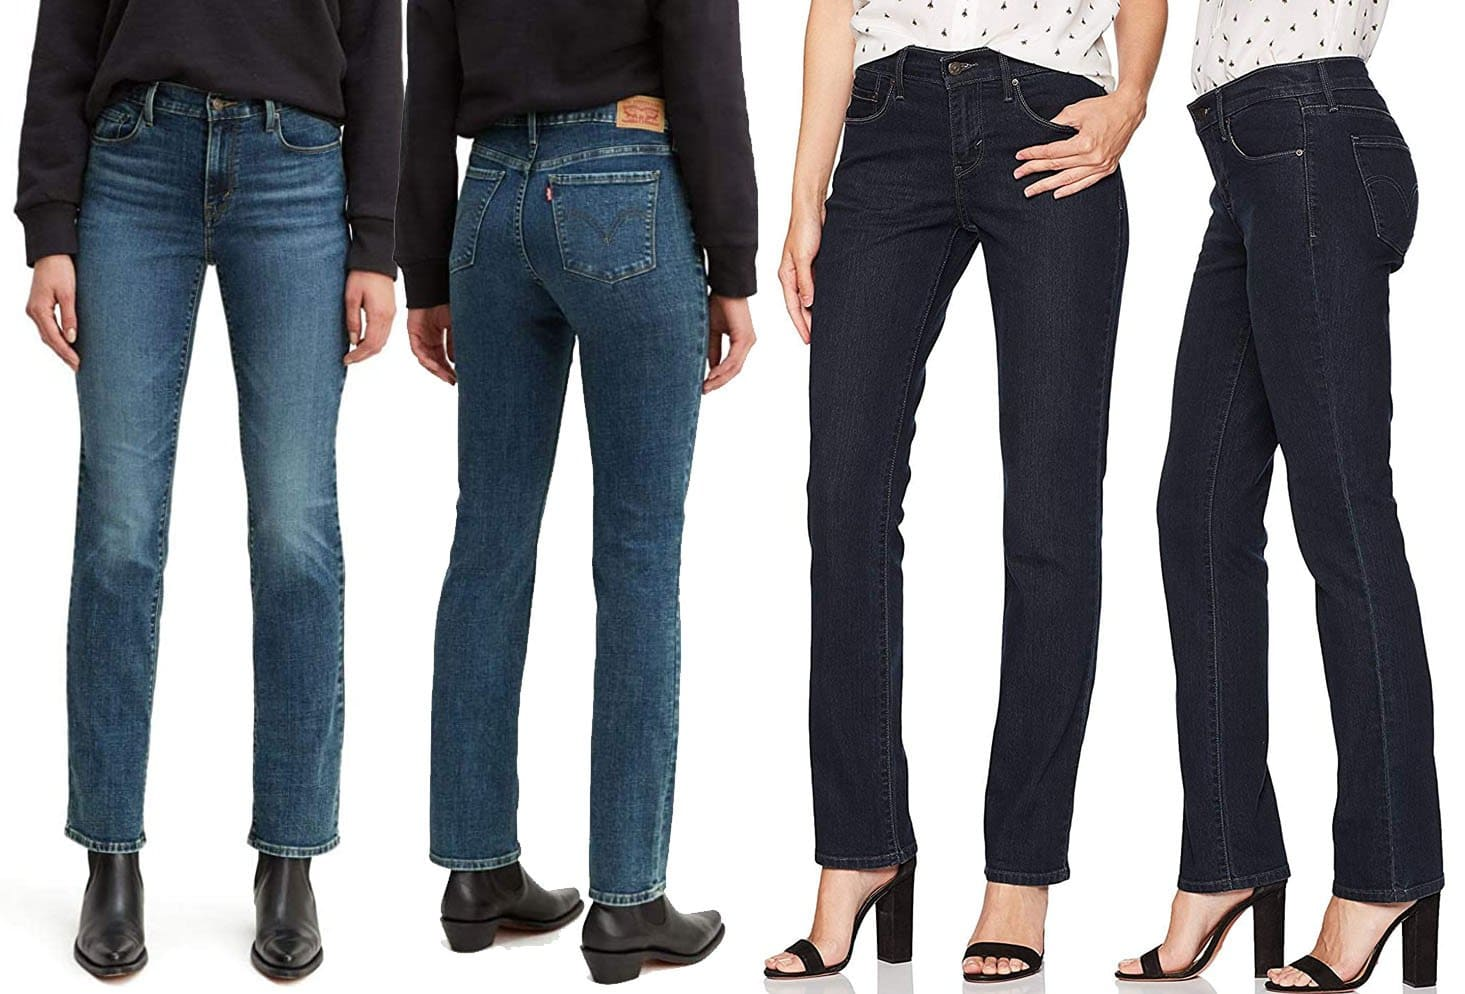 The classic straight 505 jean is made of a cotton-polyester blend with elastane, giving a structured yet stretchy fit